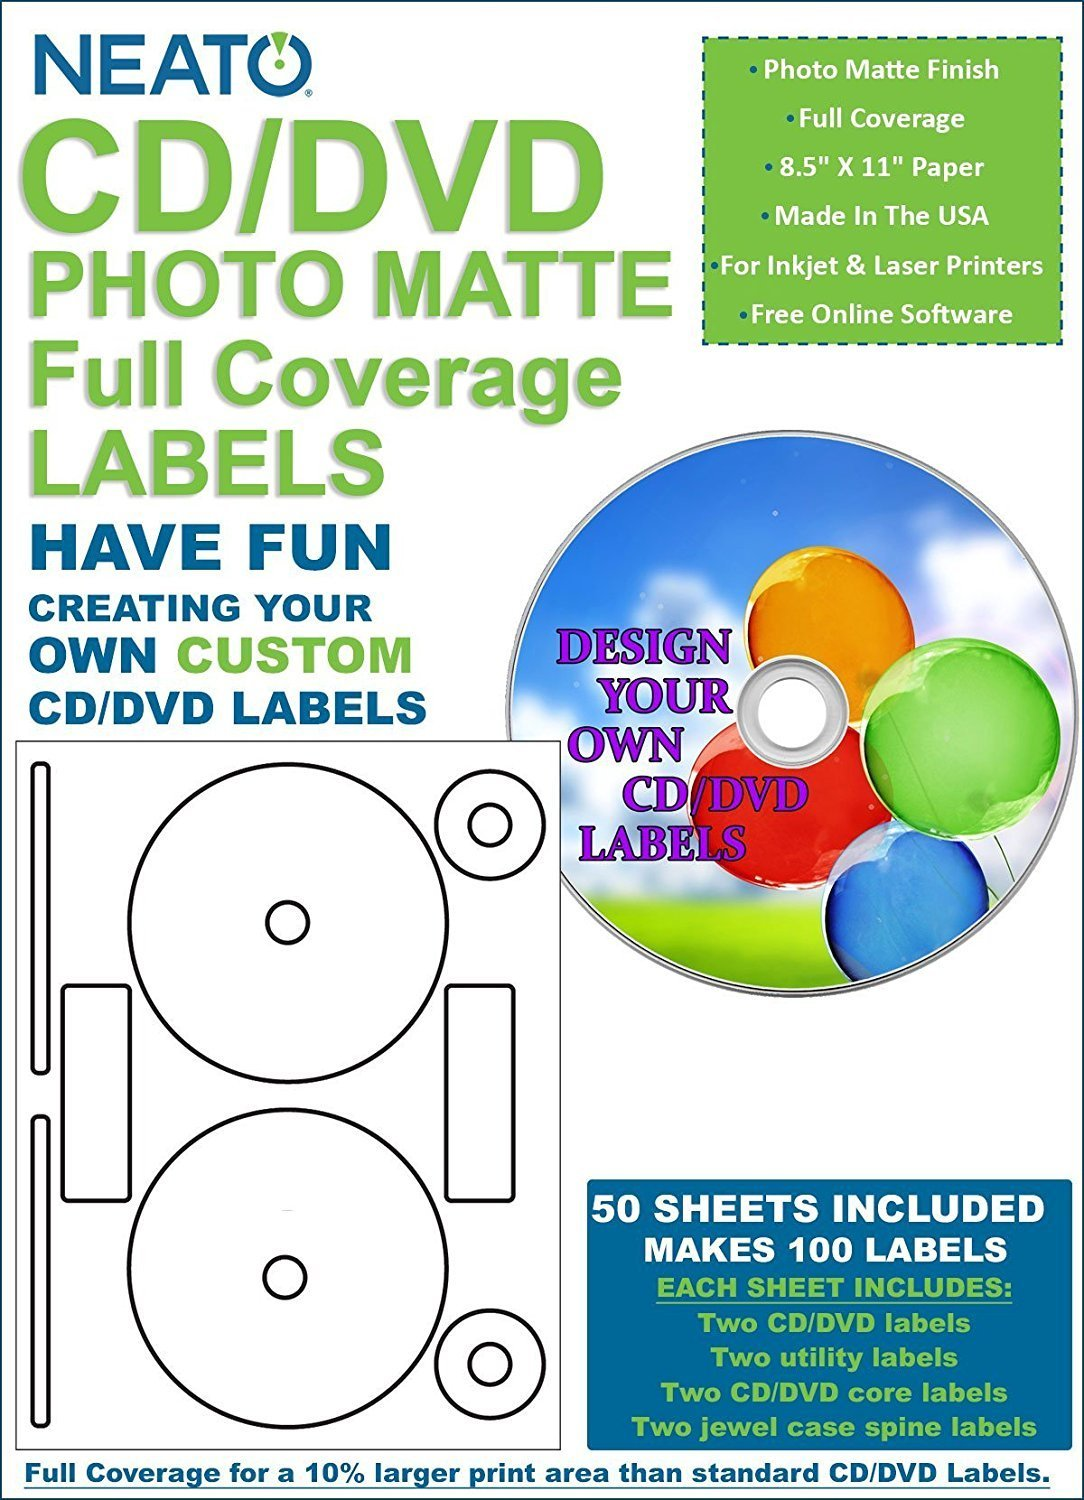 Cd Dvd Photomatte Full Coverage Labels 50 Sheets Makes 100 Labels Online Design Software Included High Quality Labels The Neato Cd Dvd By Neato Walmart Com Walmart Com